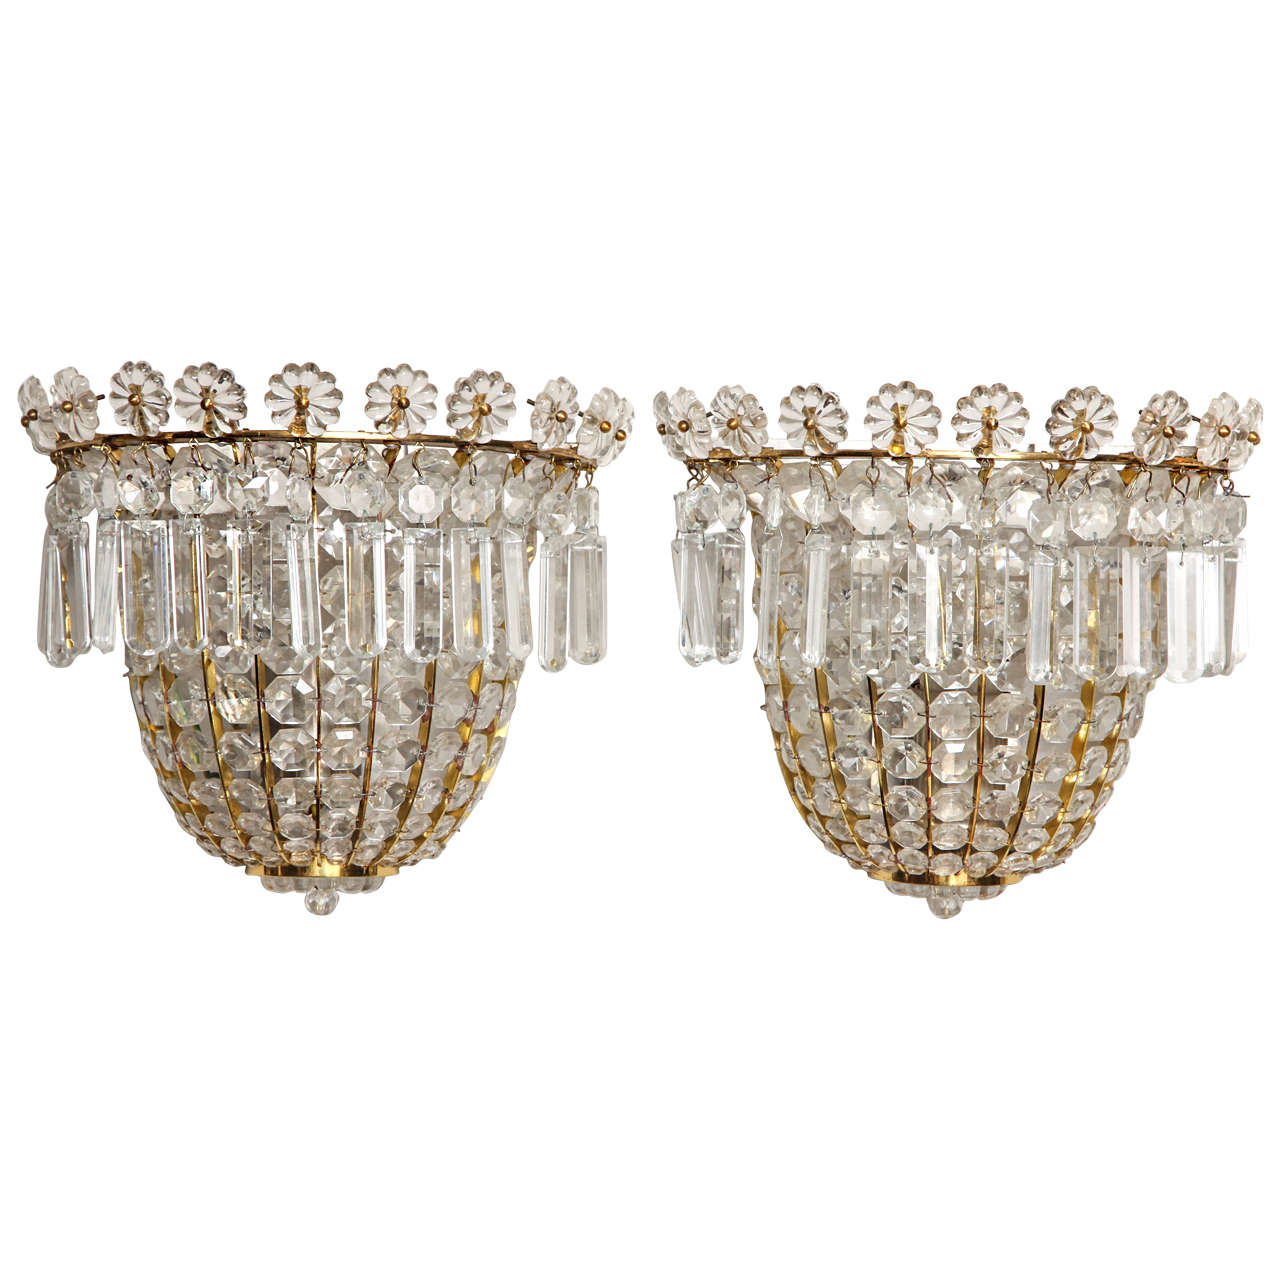 Crystal wall sconce lighting lilianduval pair of bagus style crystal beaded wall sconces for at 1stdibs amipublicfo Gallery